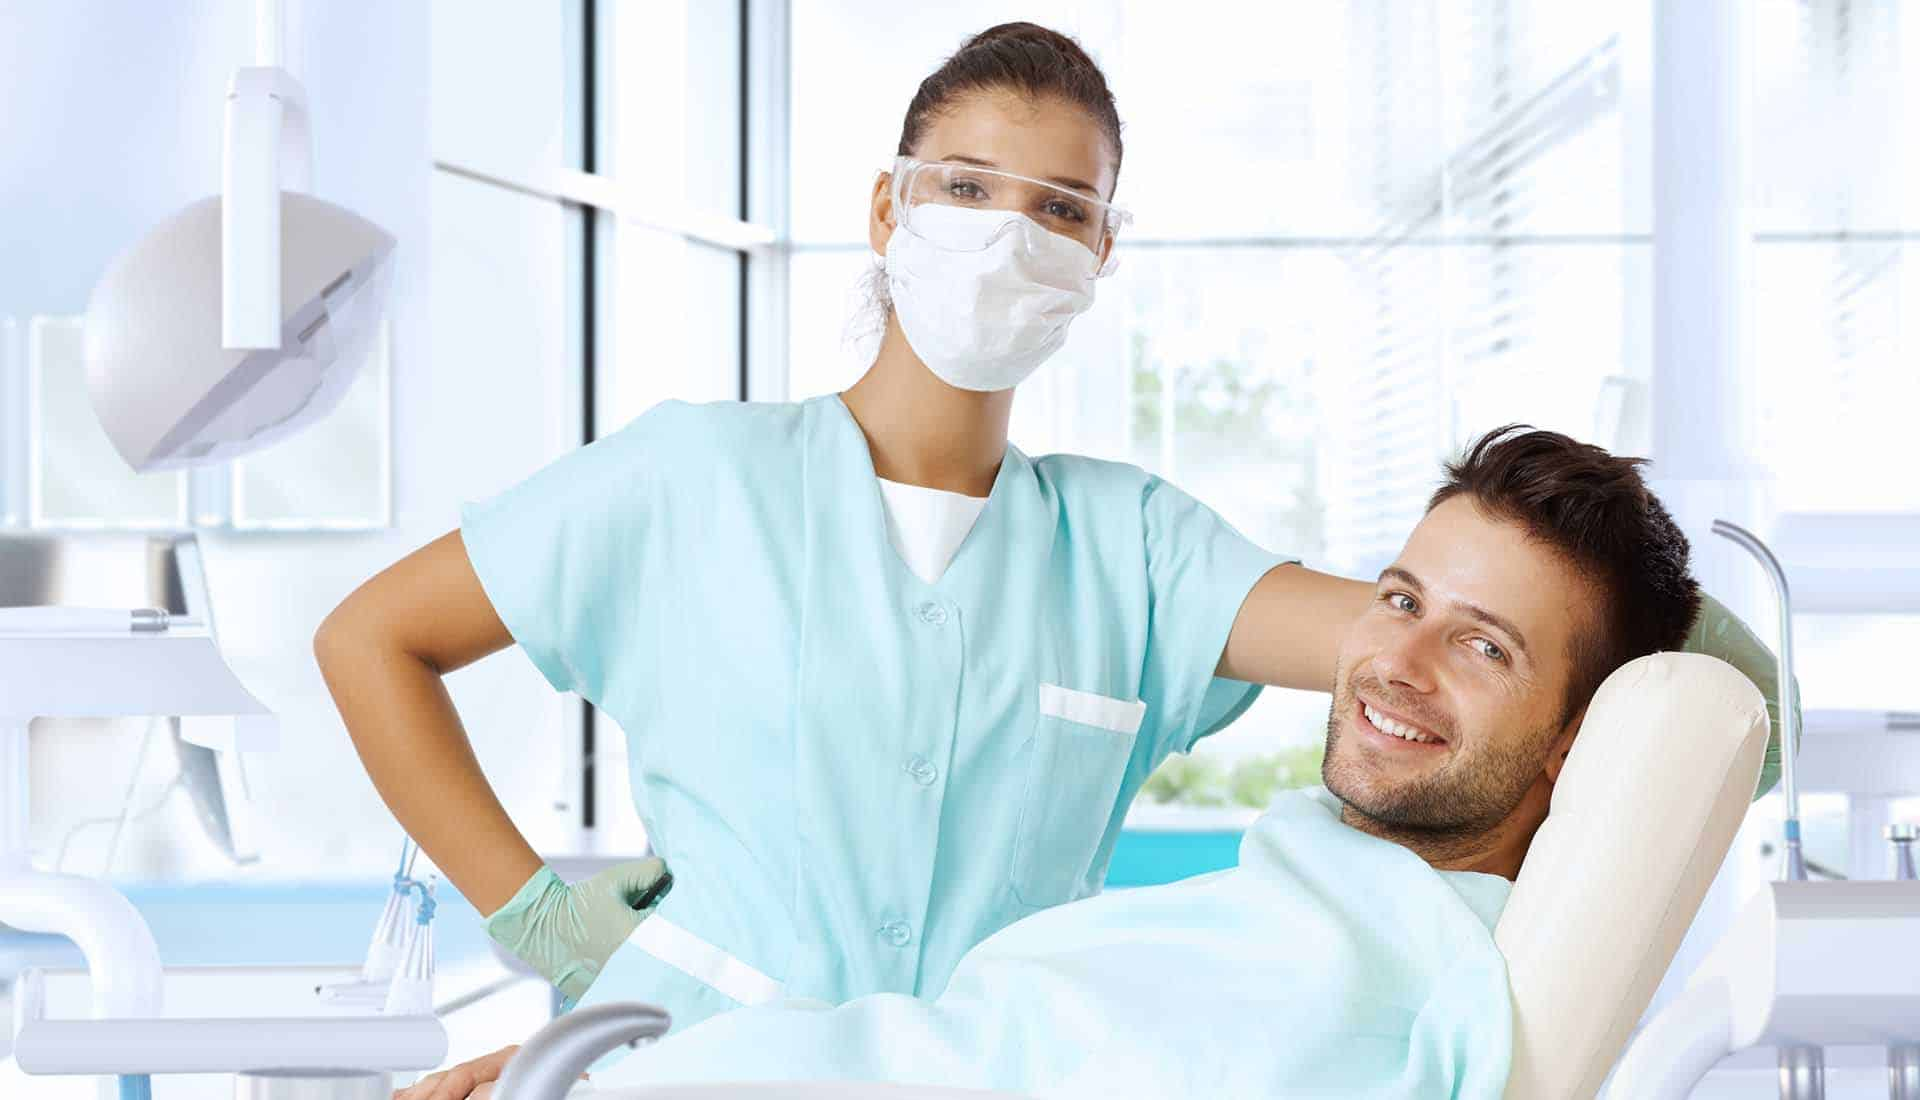 Dental surgeon and patient smiling happy before dental sedation.